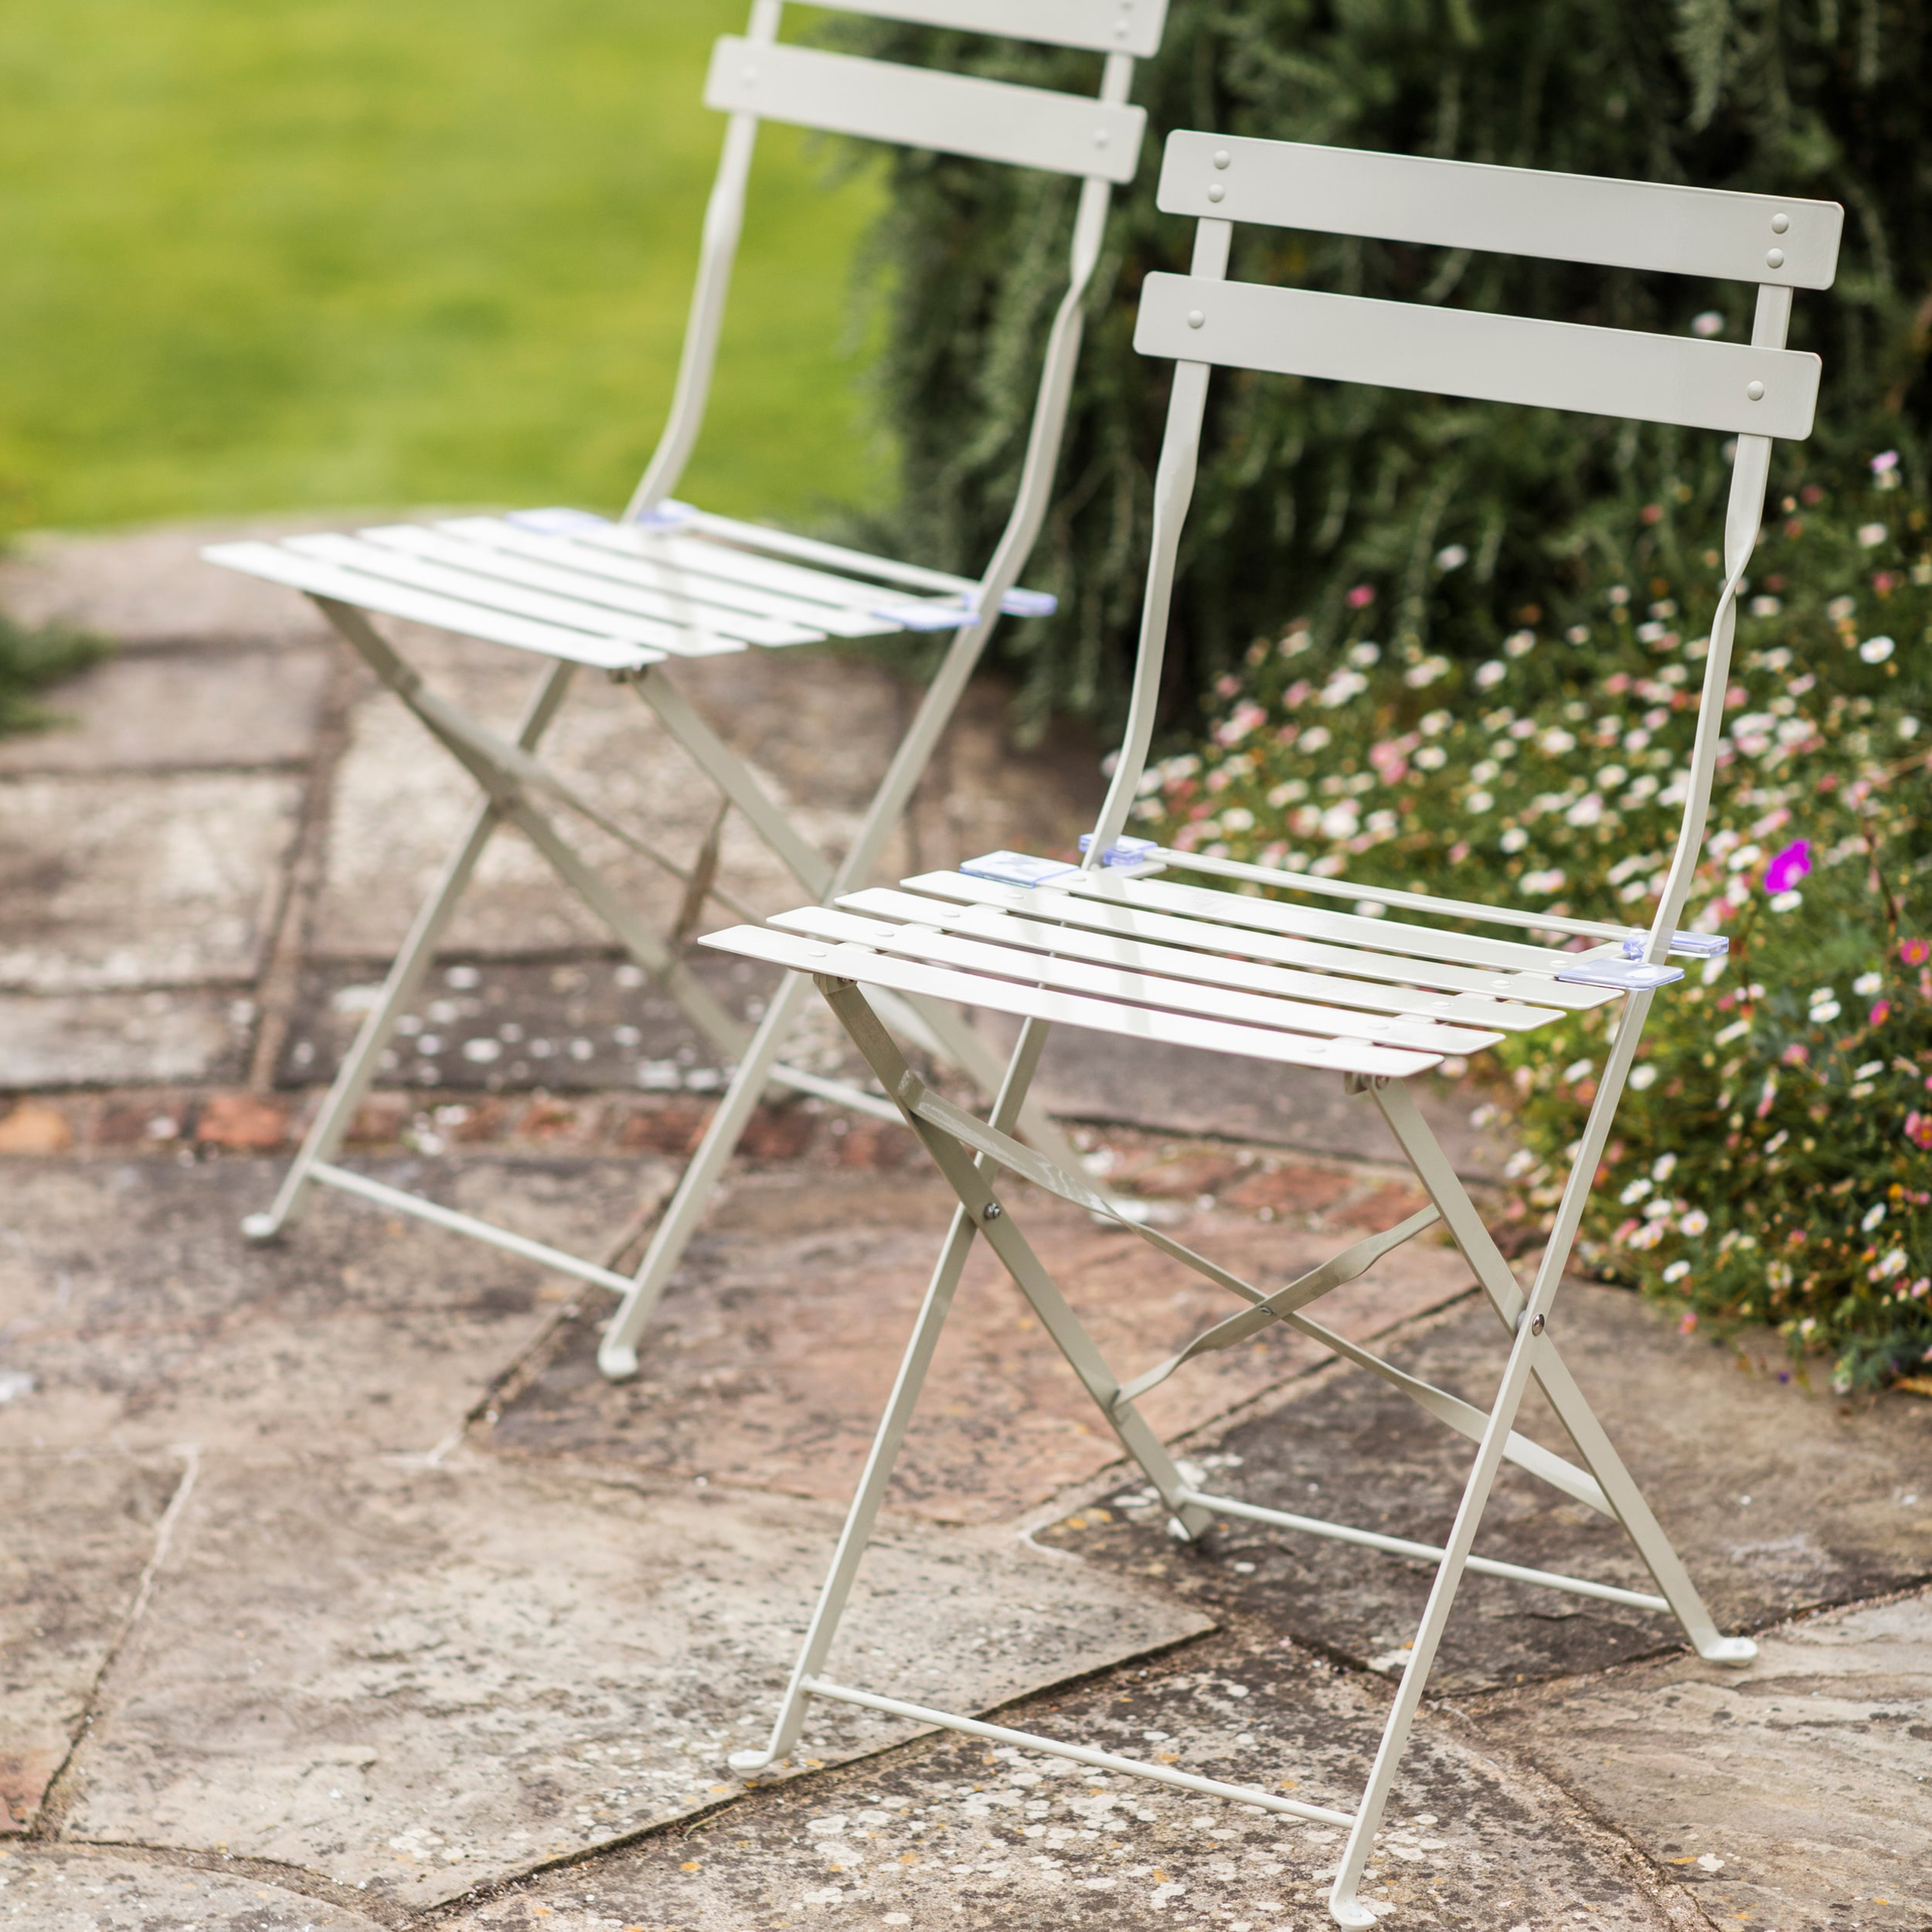 Set of 2 Bistro Chairs in Grey, Cream or Green | Garden Trading